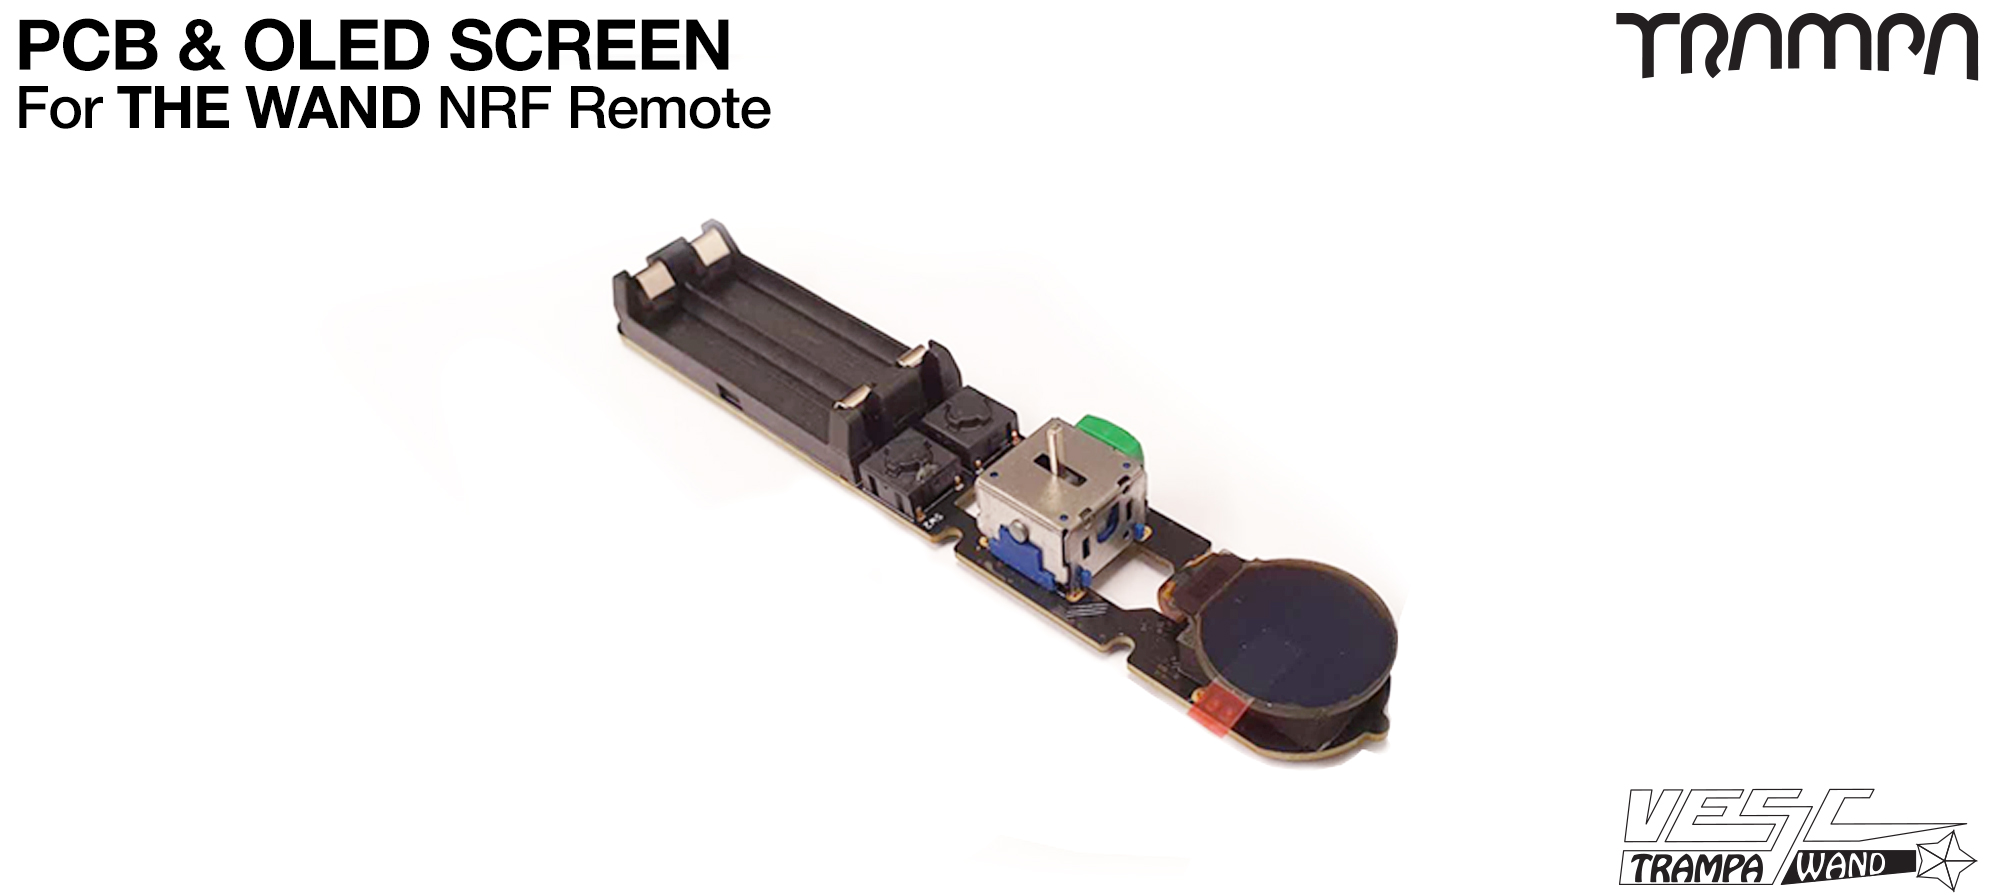 WAND - PCB from Including fitting OLED Screen